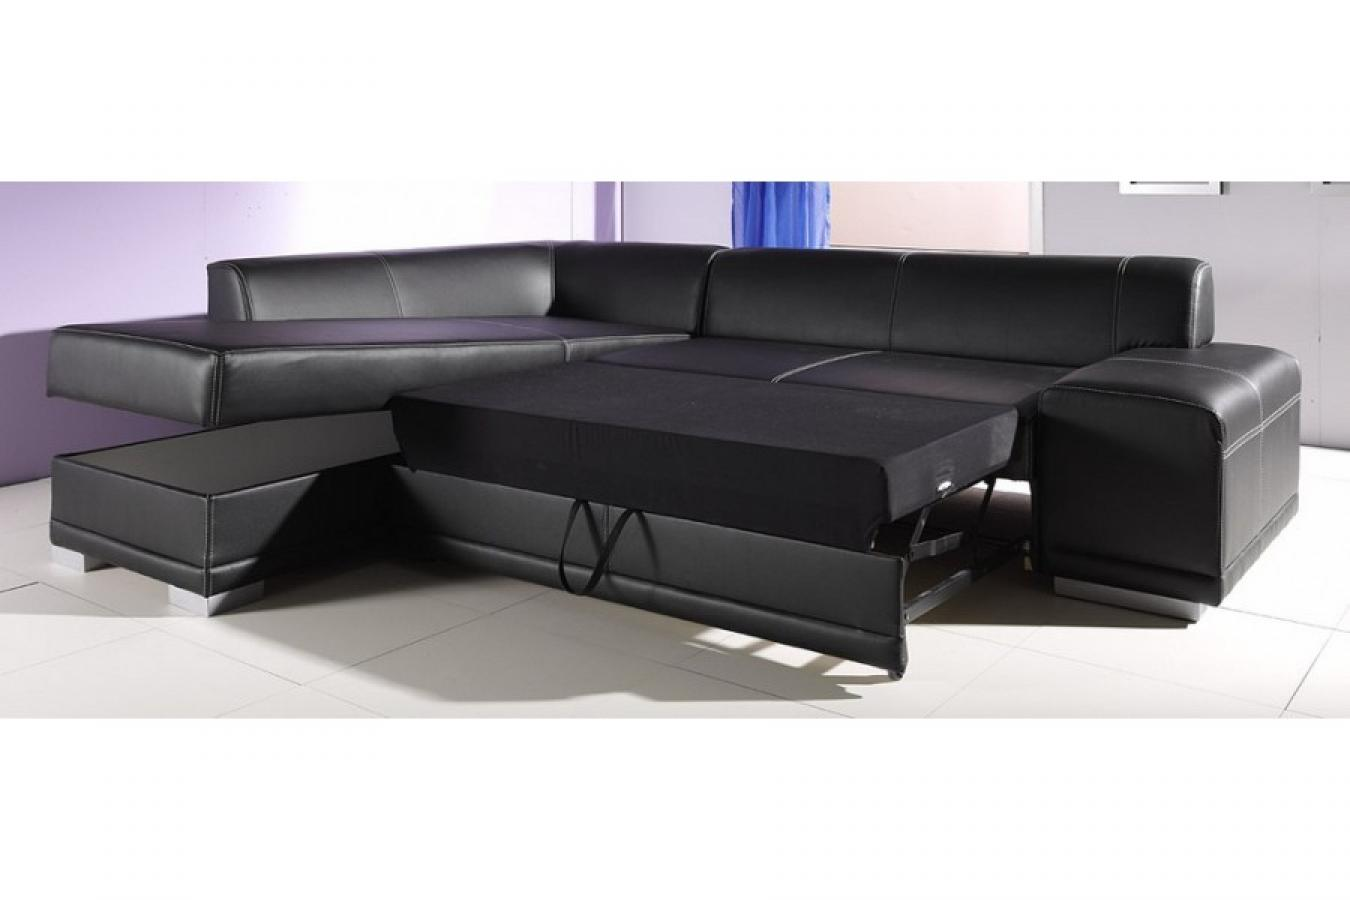 Canape d angle convertible noir maison design for Convertible angle